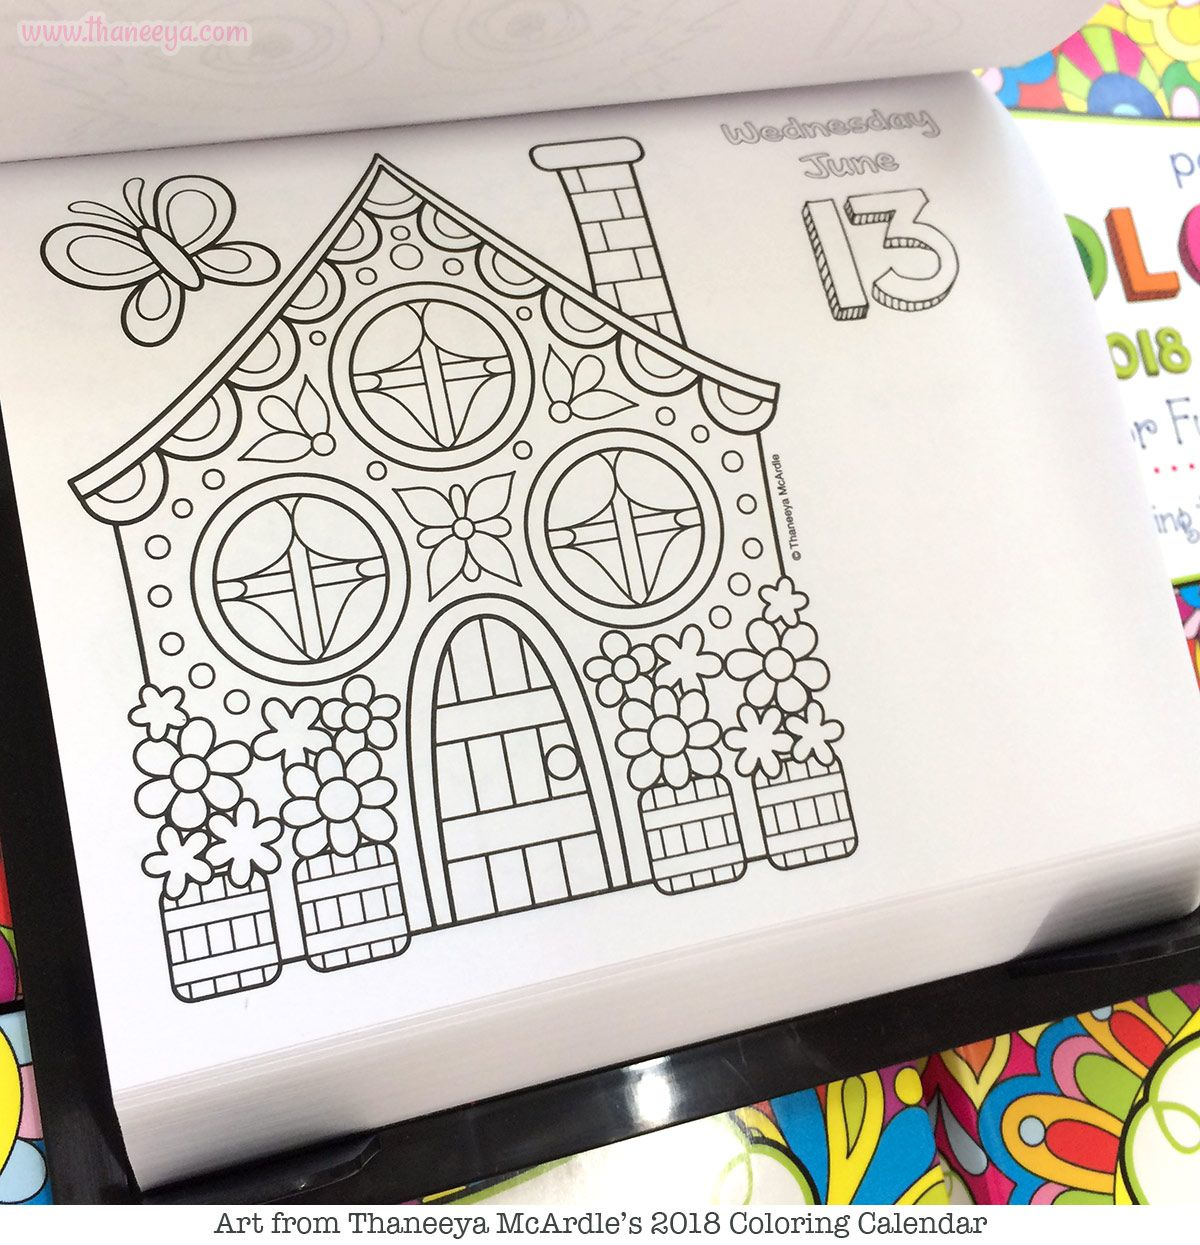 Cute Cottage Coloring Page From Thaneeya McArdles 2018 Calendar